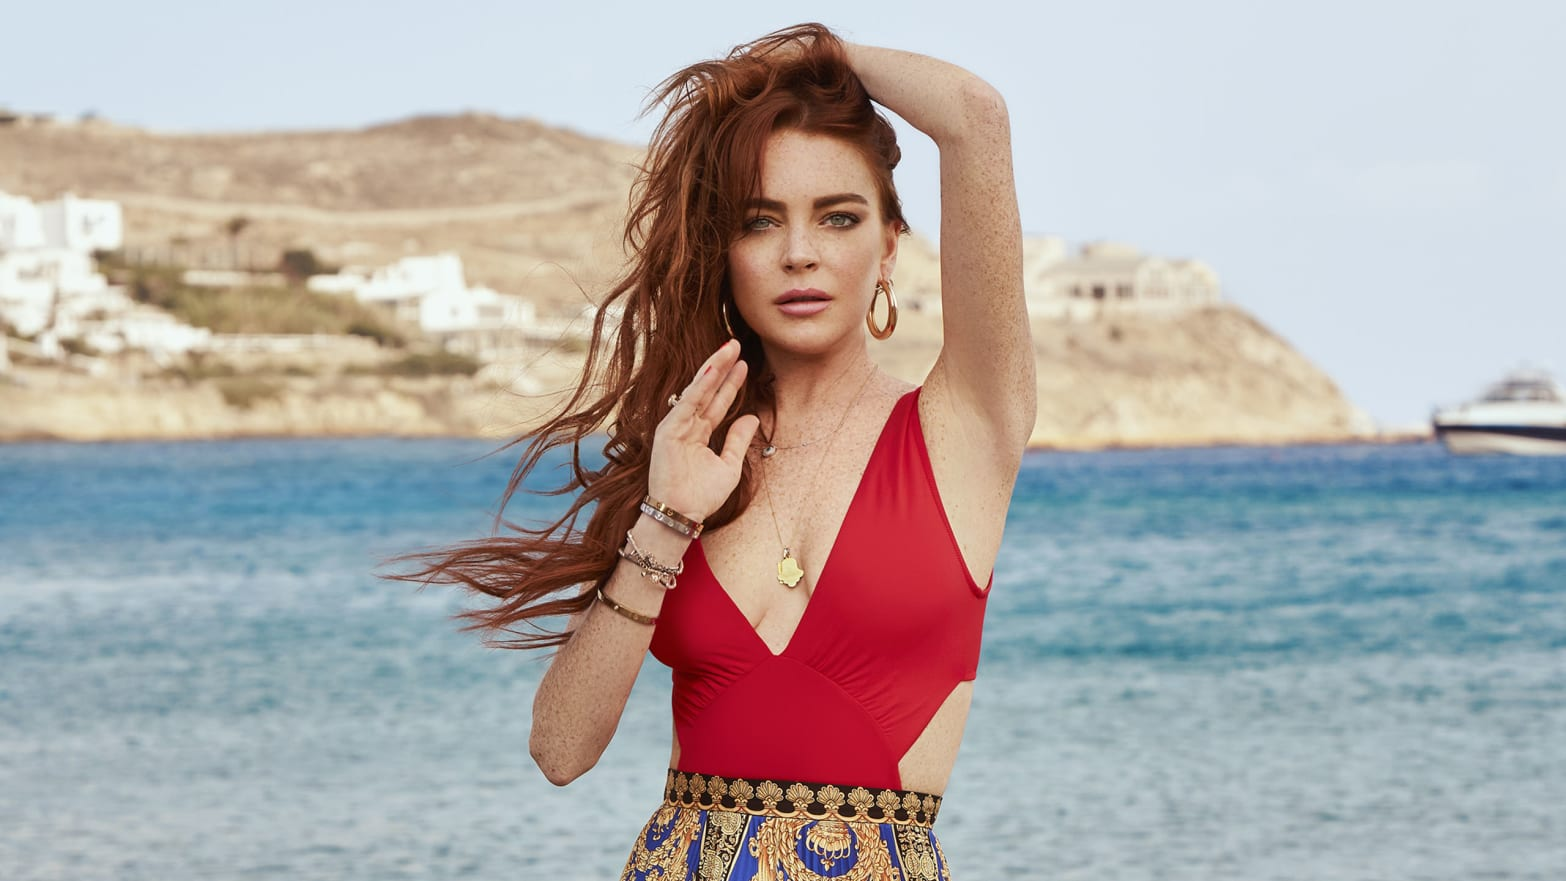 Lindsay lohan gets off with all of italy nude (44 pic)